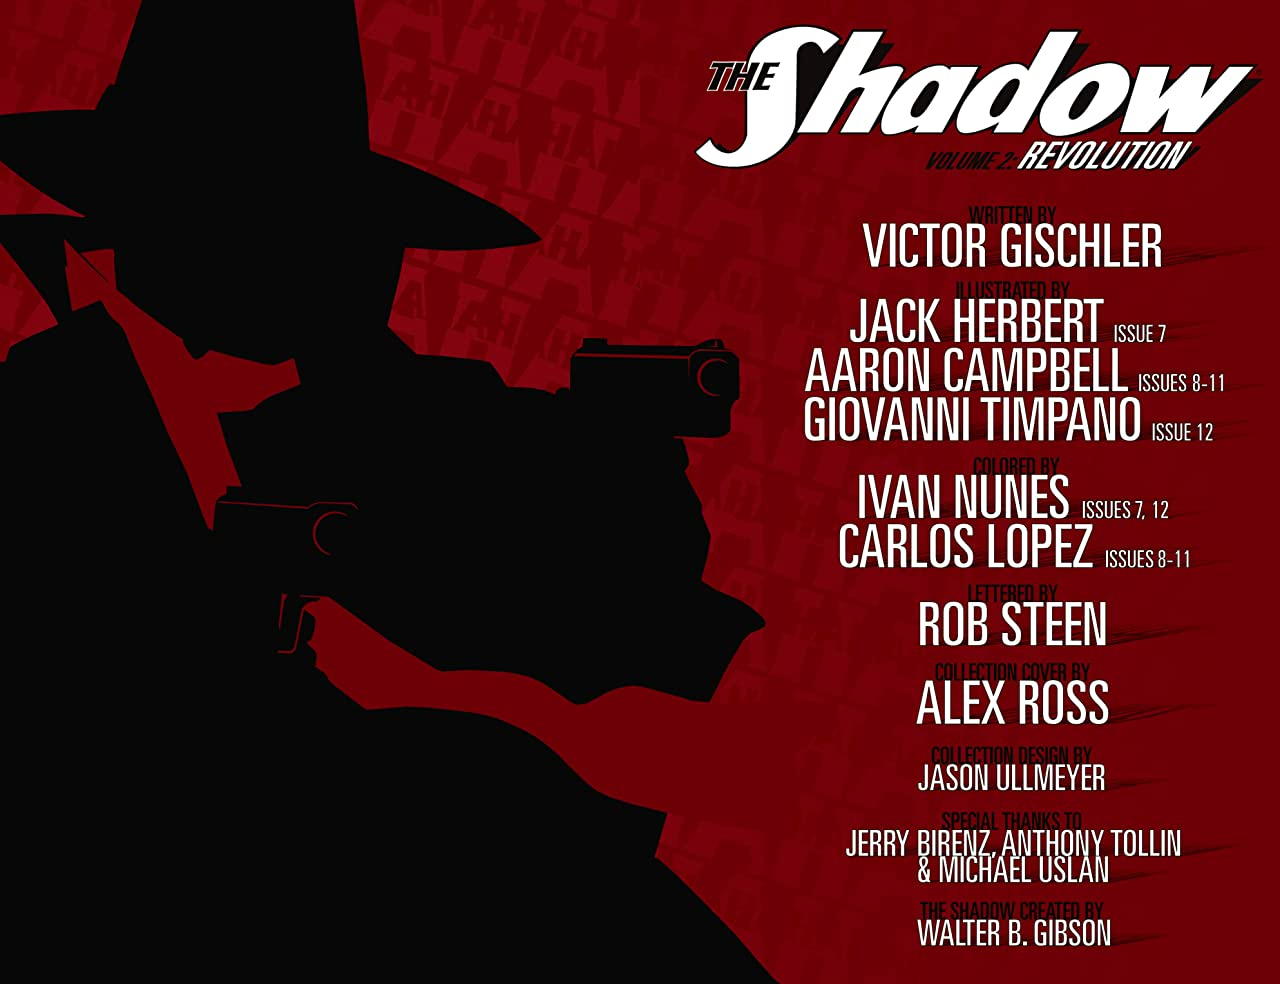 The Shadow Vol. 2: Revolution